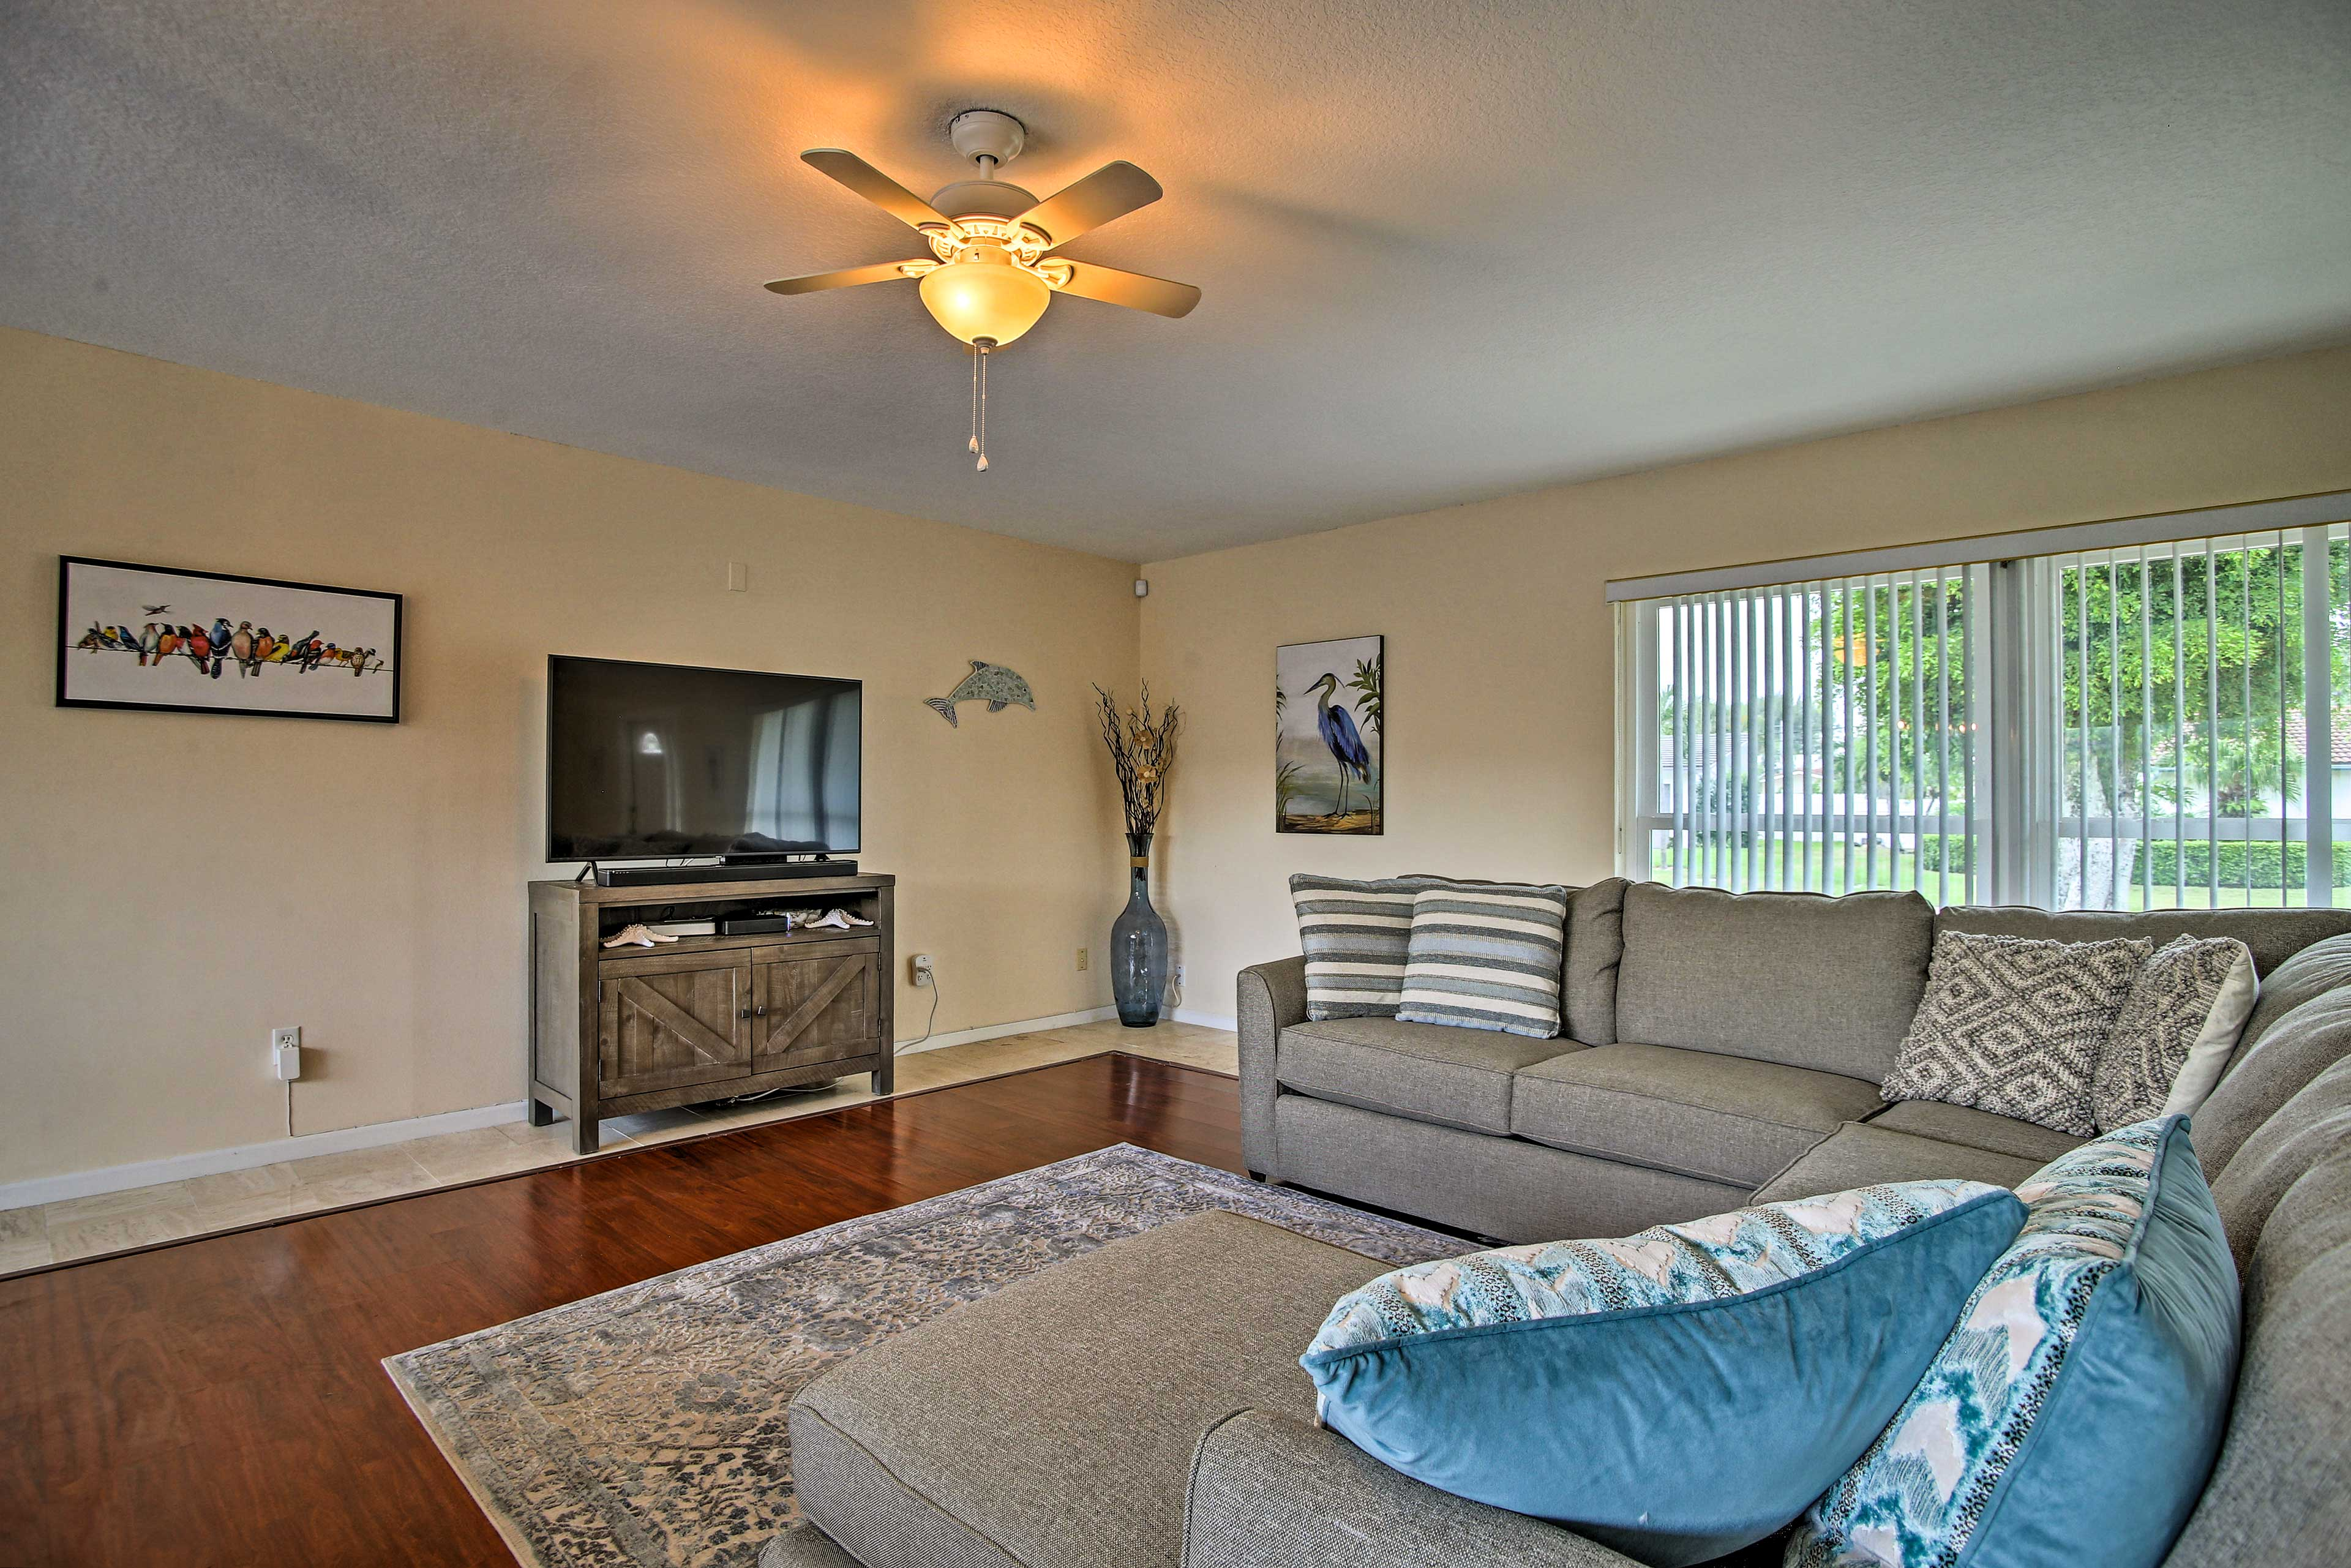 Watch a show or movie on the large flat-screen TV.